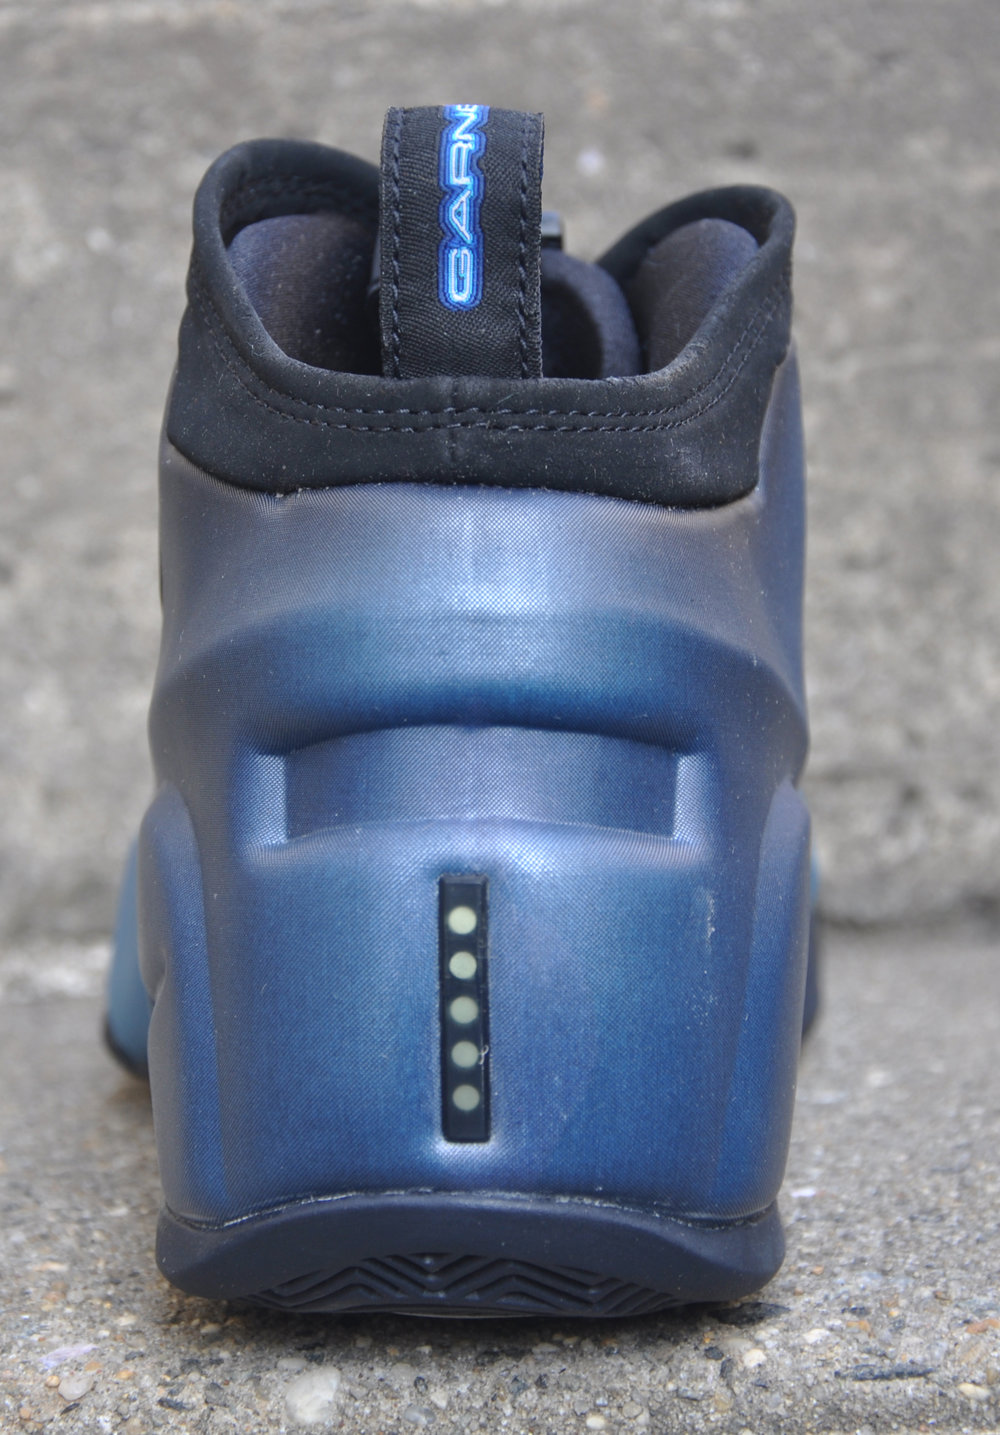 huge selection of 95a63 aeecc Nike Air Flightposite KG Black   Obsidian   Orion Blue (Size 11.5) DS —  Roots